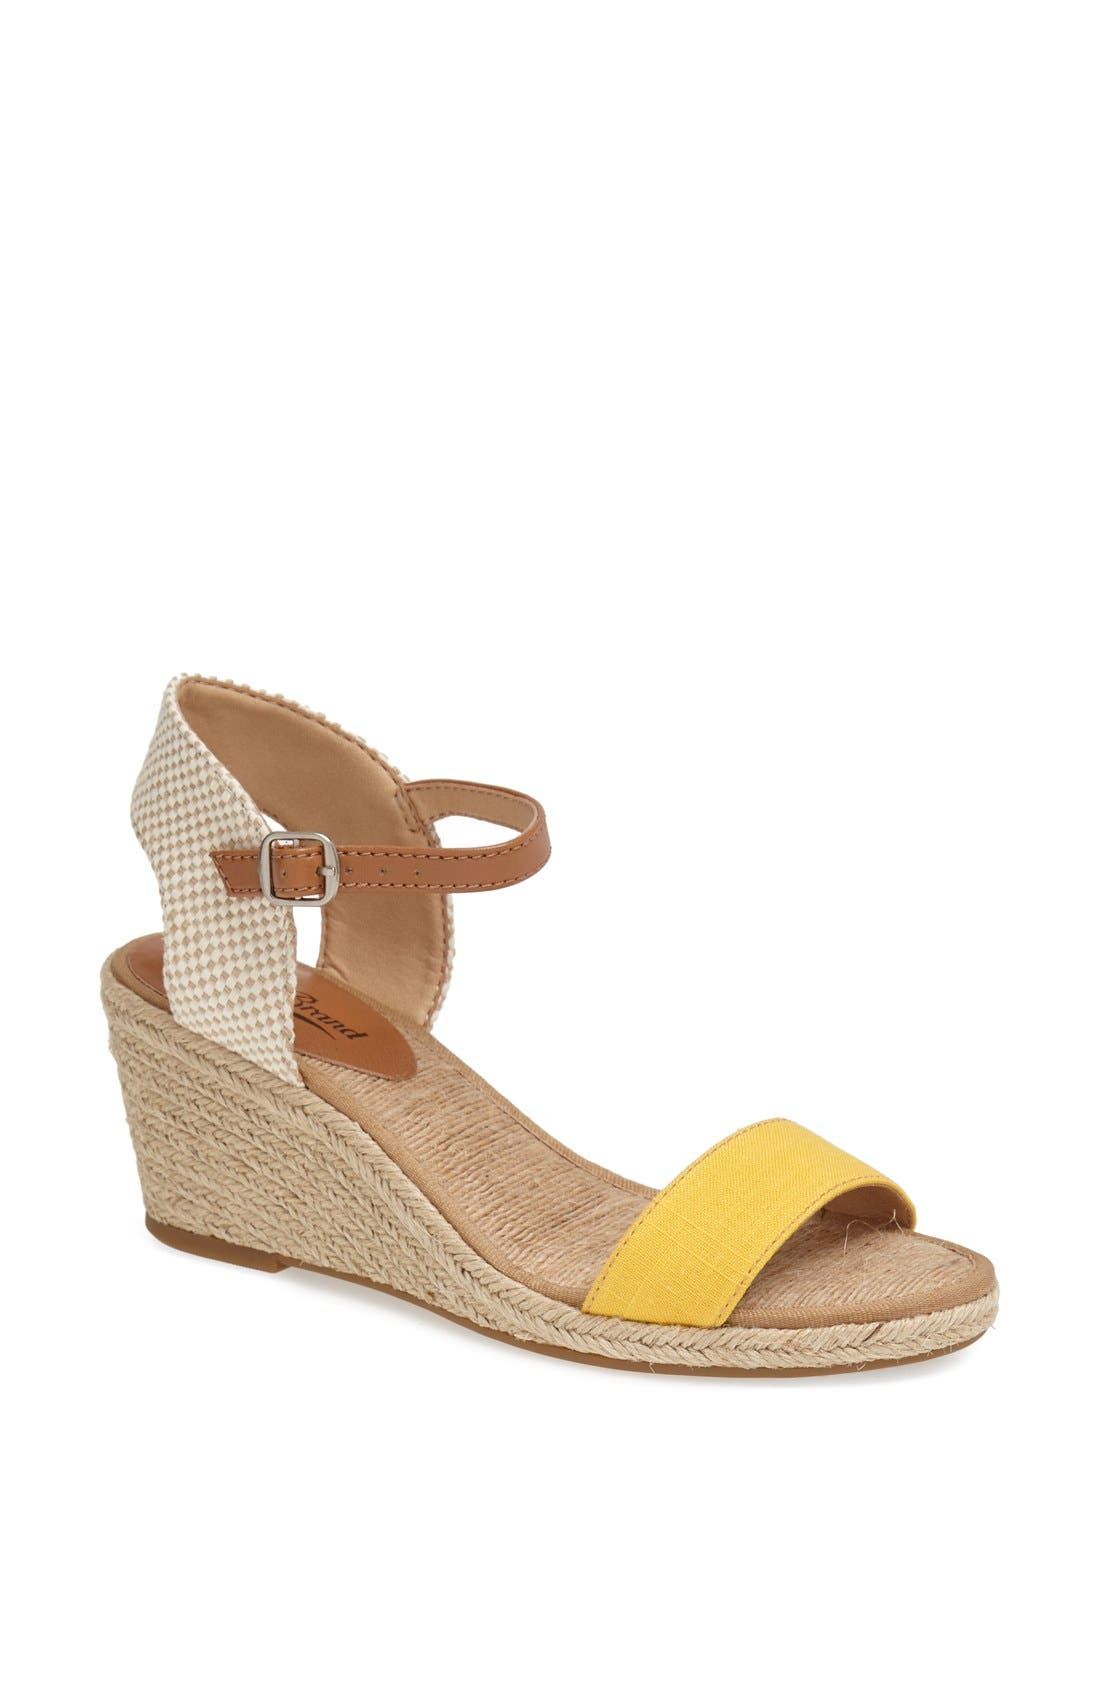 Main Image - Lucky Brand 'Kavelli' Espadrille Wedge